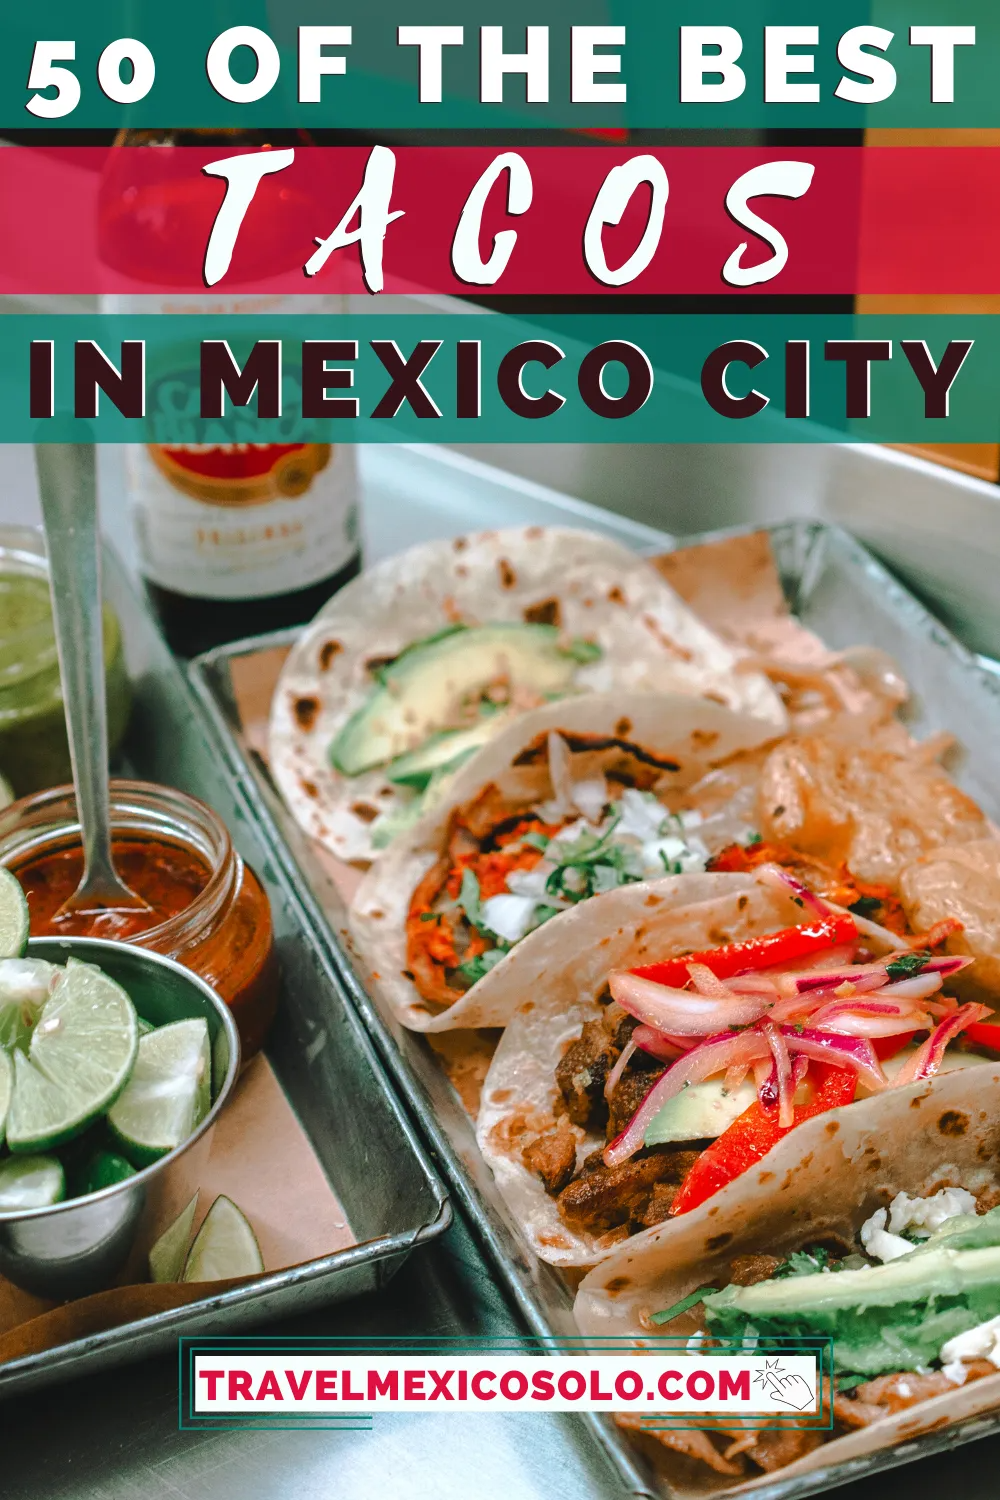 Free Google Map To The 50 Best Tacos In Mexico City Travel Mexico Solo In 2020 Food Guide Culinary Travel Foodie Travel